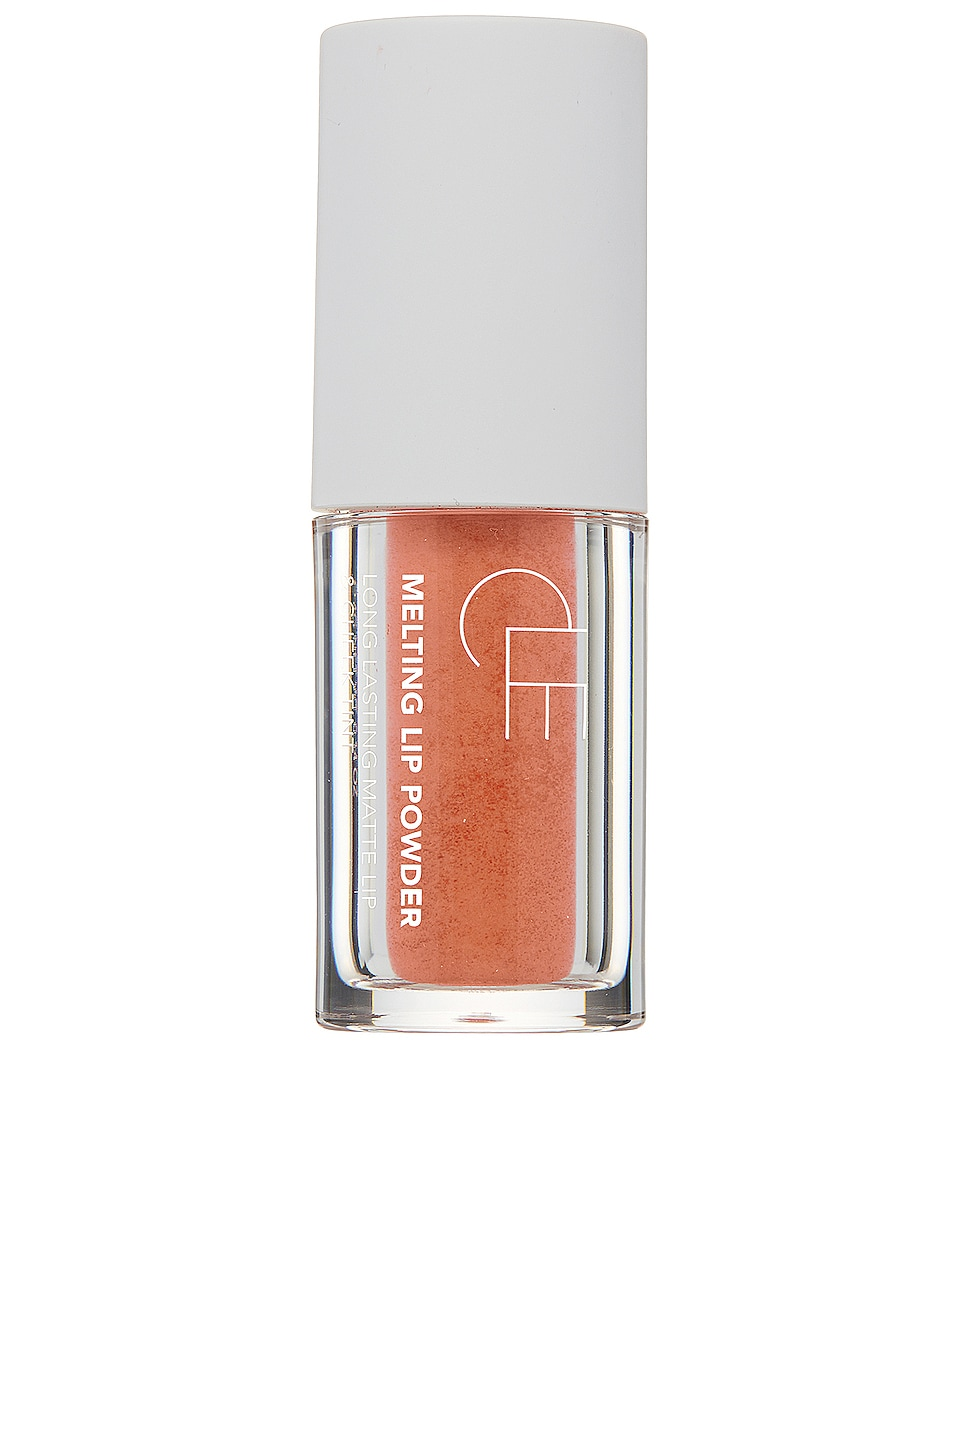 CLE COSMETICS Melting Lip Powder in Blushing Peach